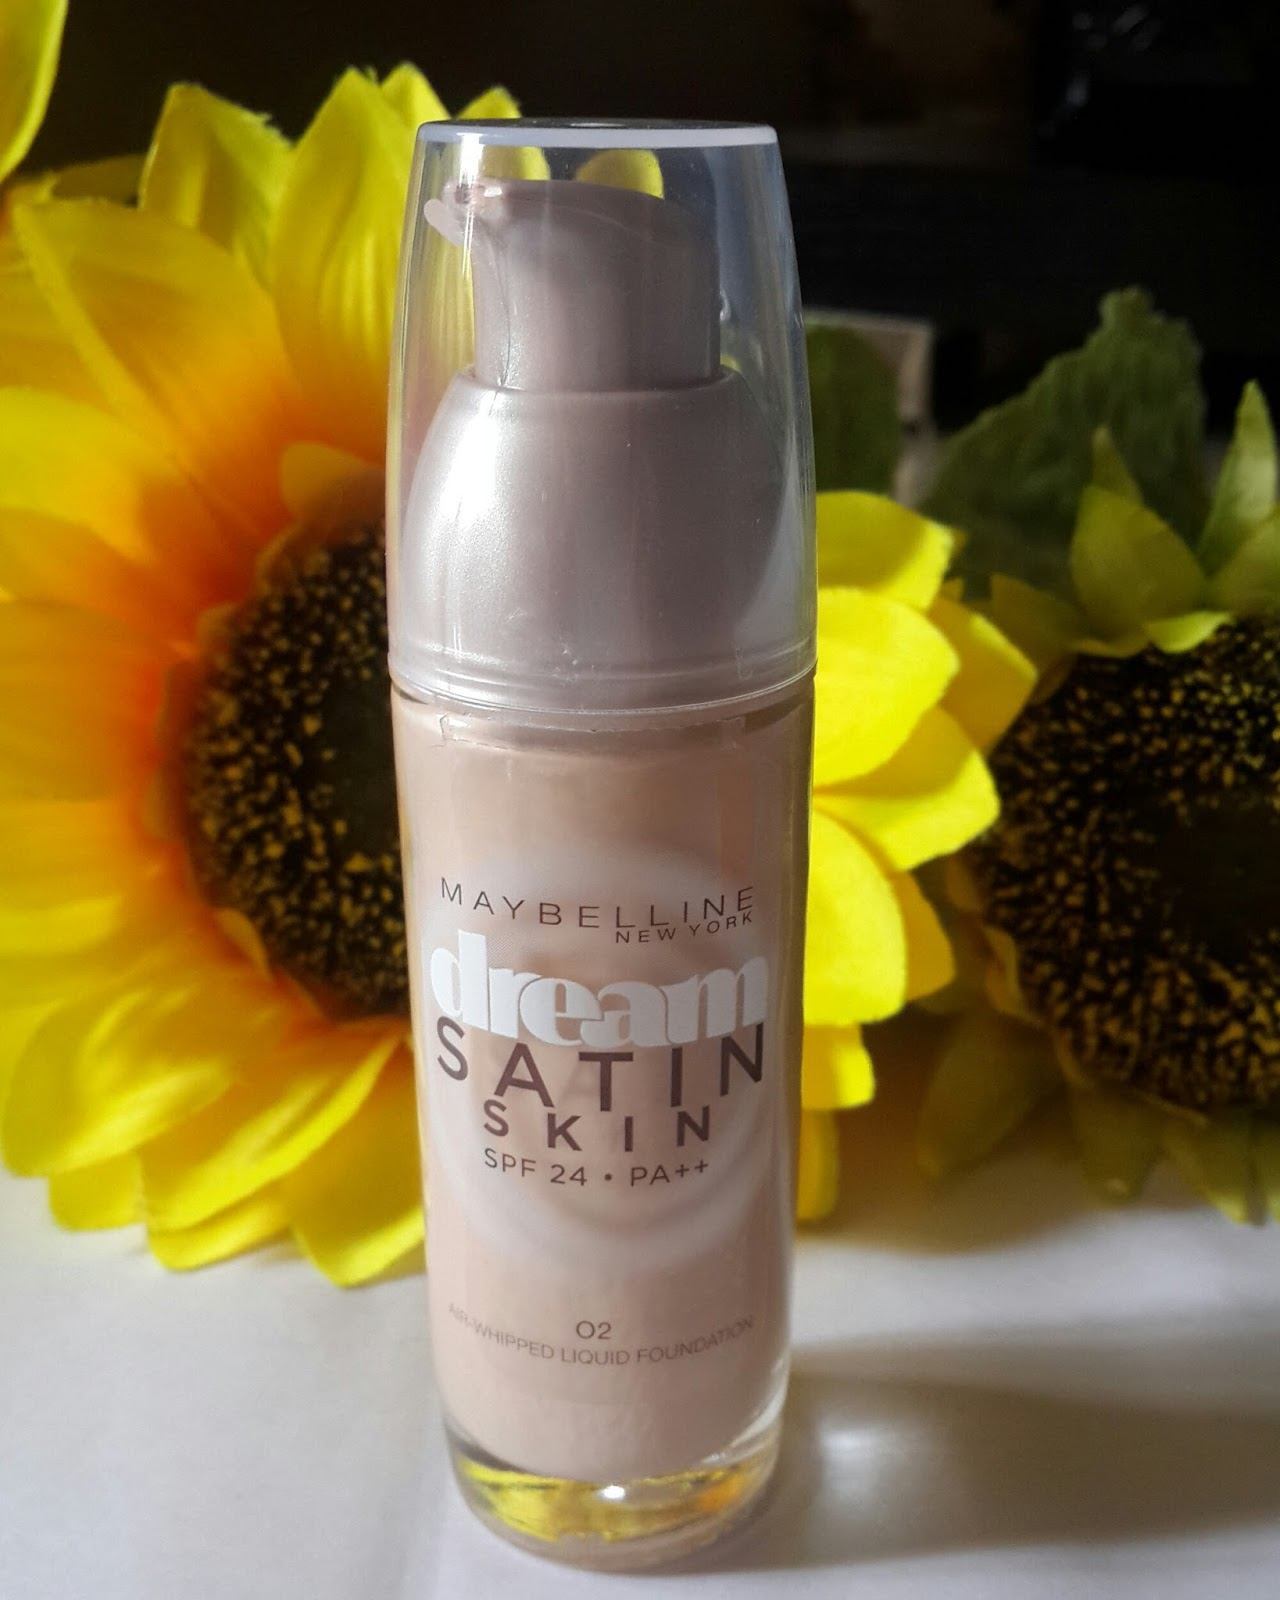 Ridzi Makeup Rebel Bouquet Maybelline Dream Satin Two Way Cake 01 Light New Liquid Foundation Review With Look